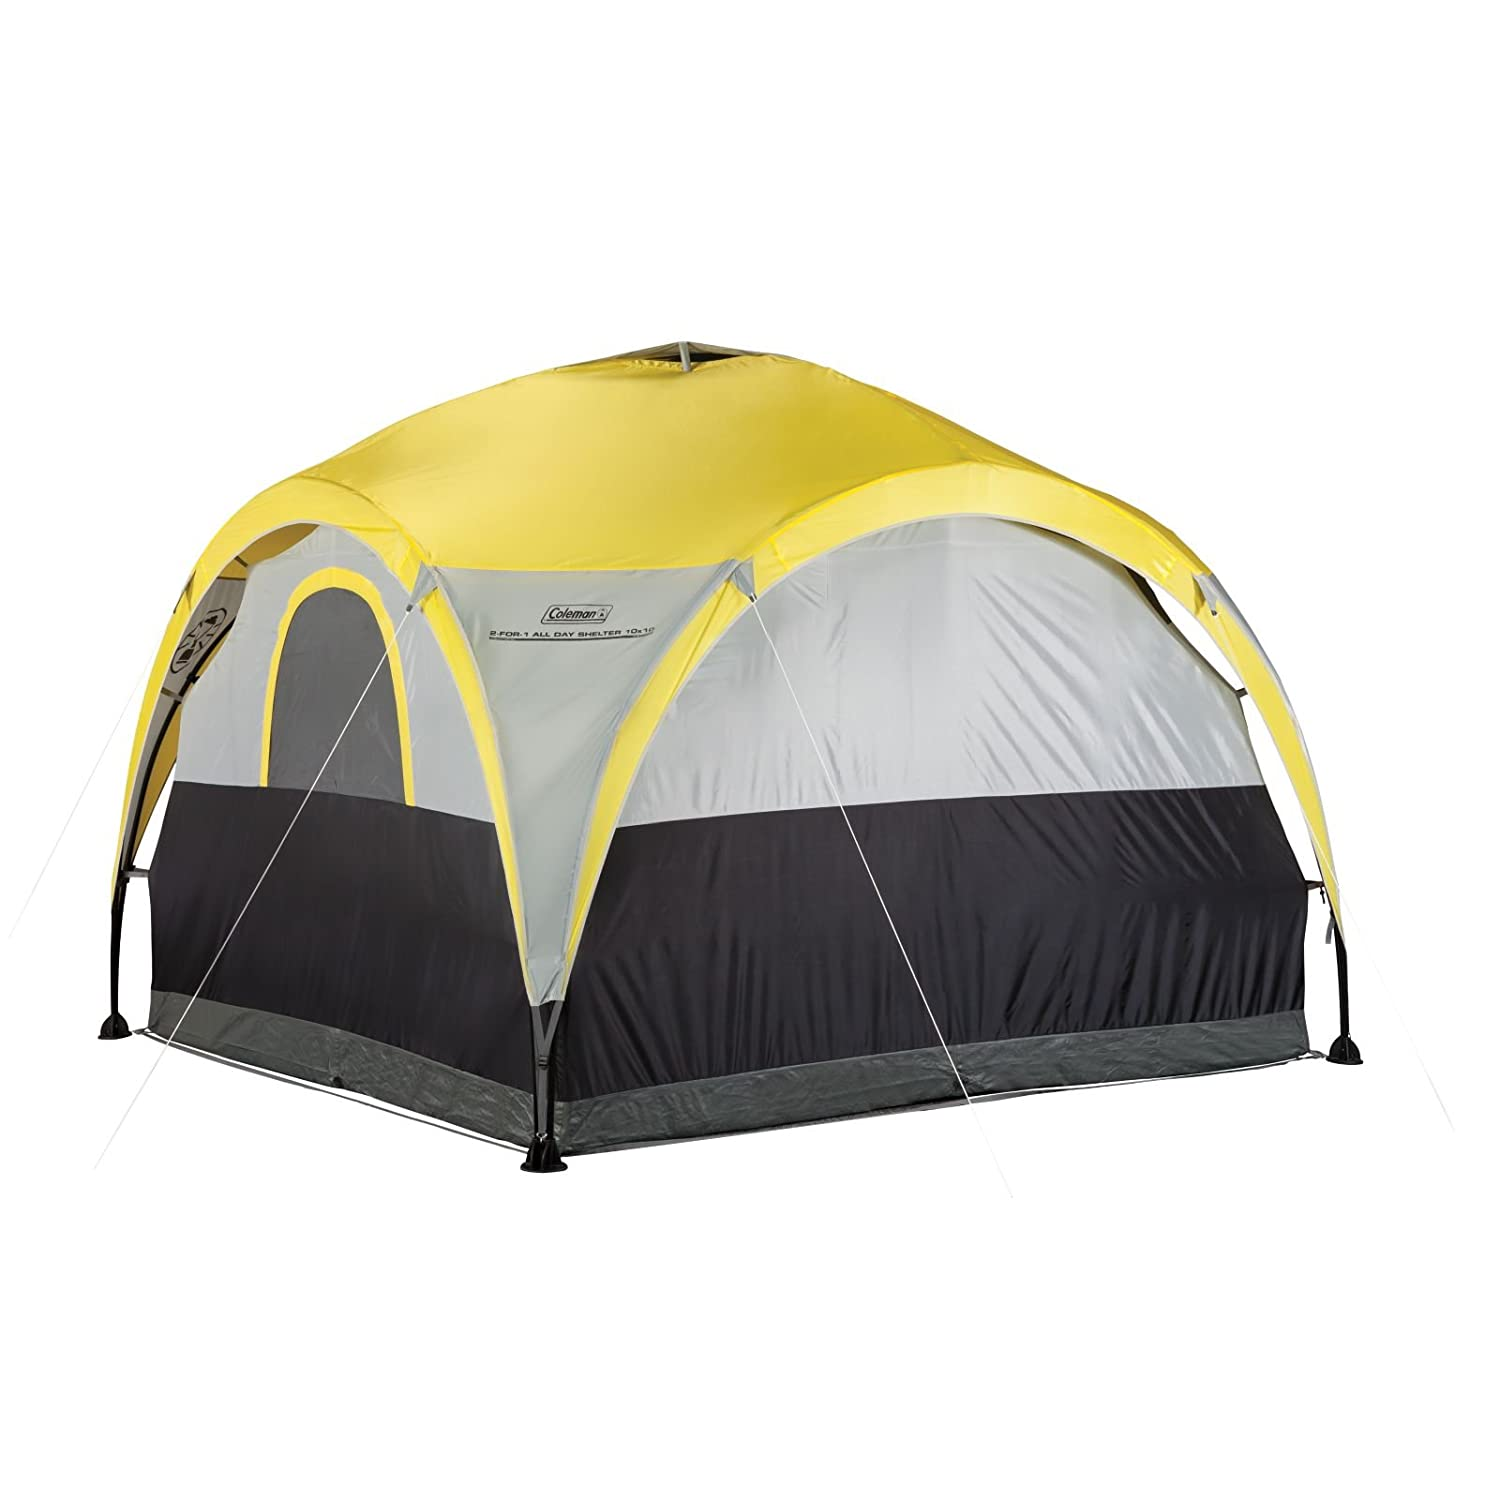 Amazon.com  Coleman 2-For-1 All Day 4-Person Shelter u0026 Tent  Sports u0026 Outdoors  sc 1 st  Amazon.com & Amazon.com : Coleman 2-For-1 All Day 4-Person Shelter u0026 Tent ...